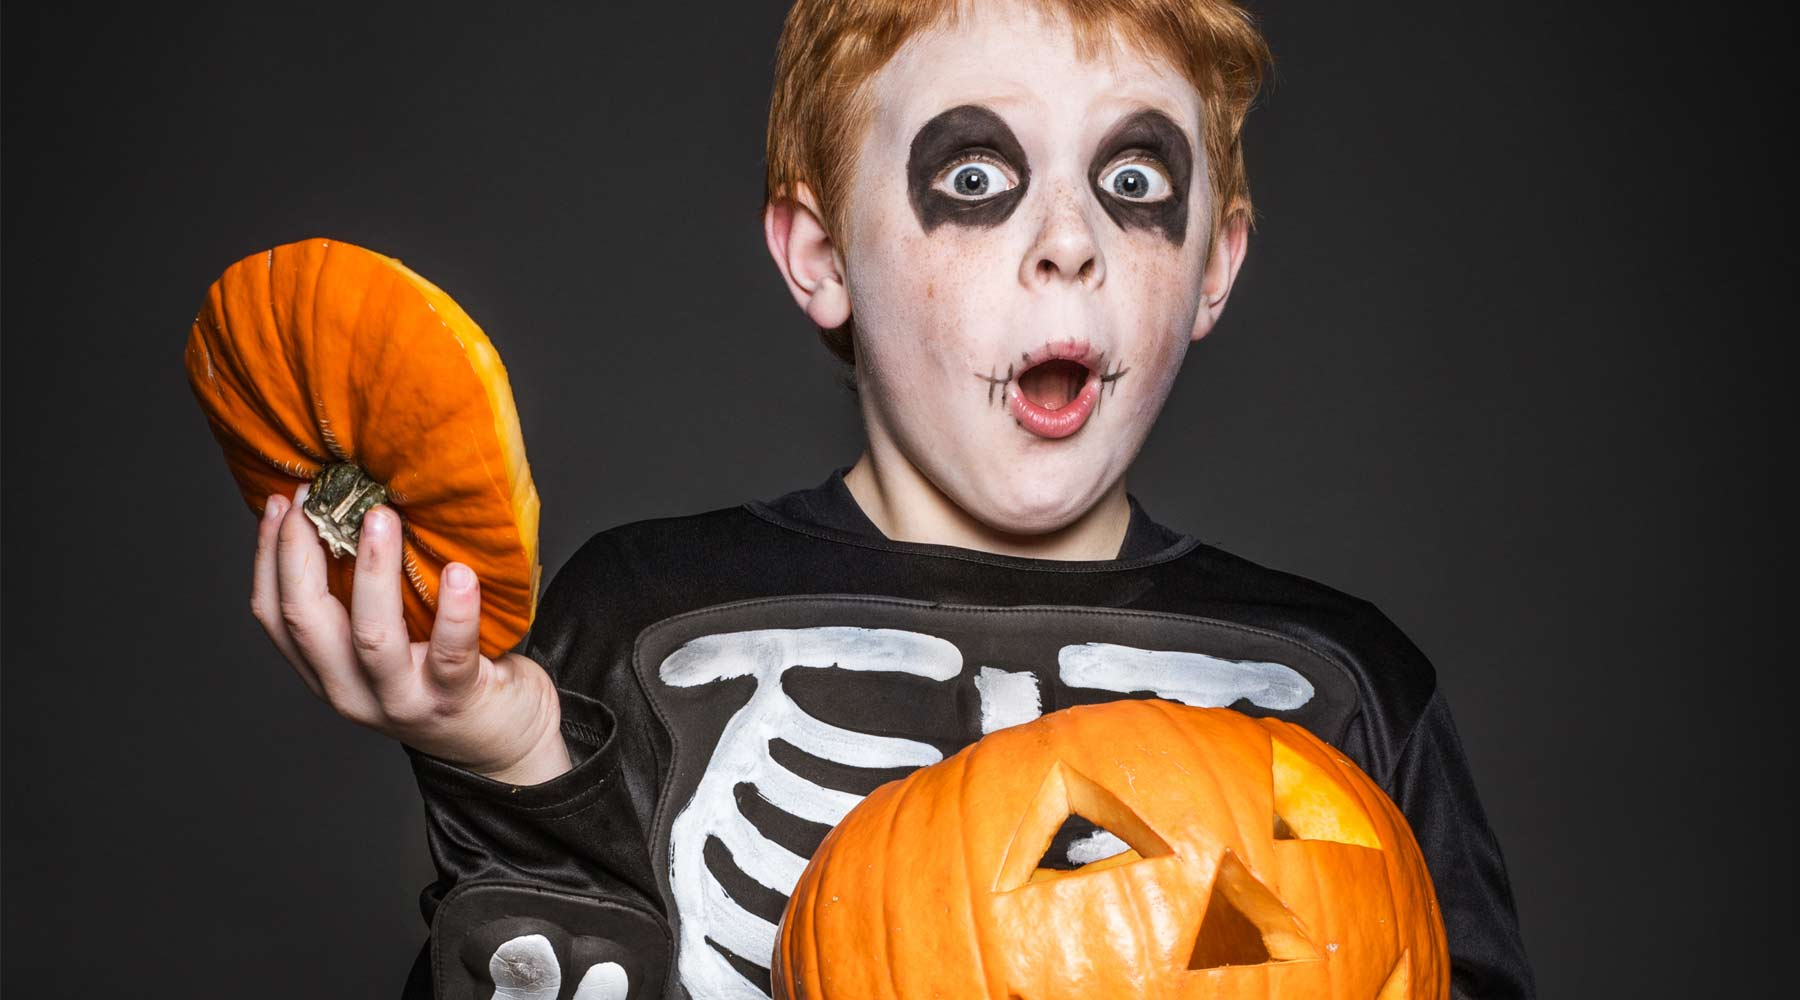 5 Spooktacular Tricks & Treats for Halloween